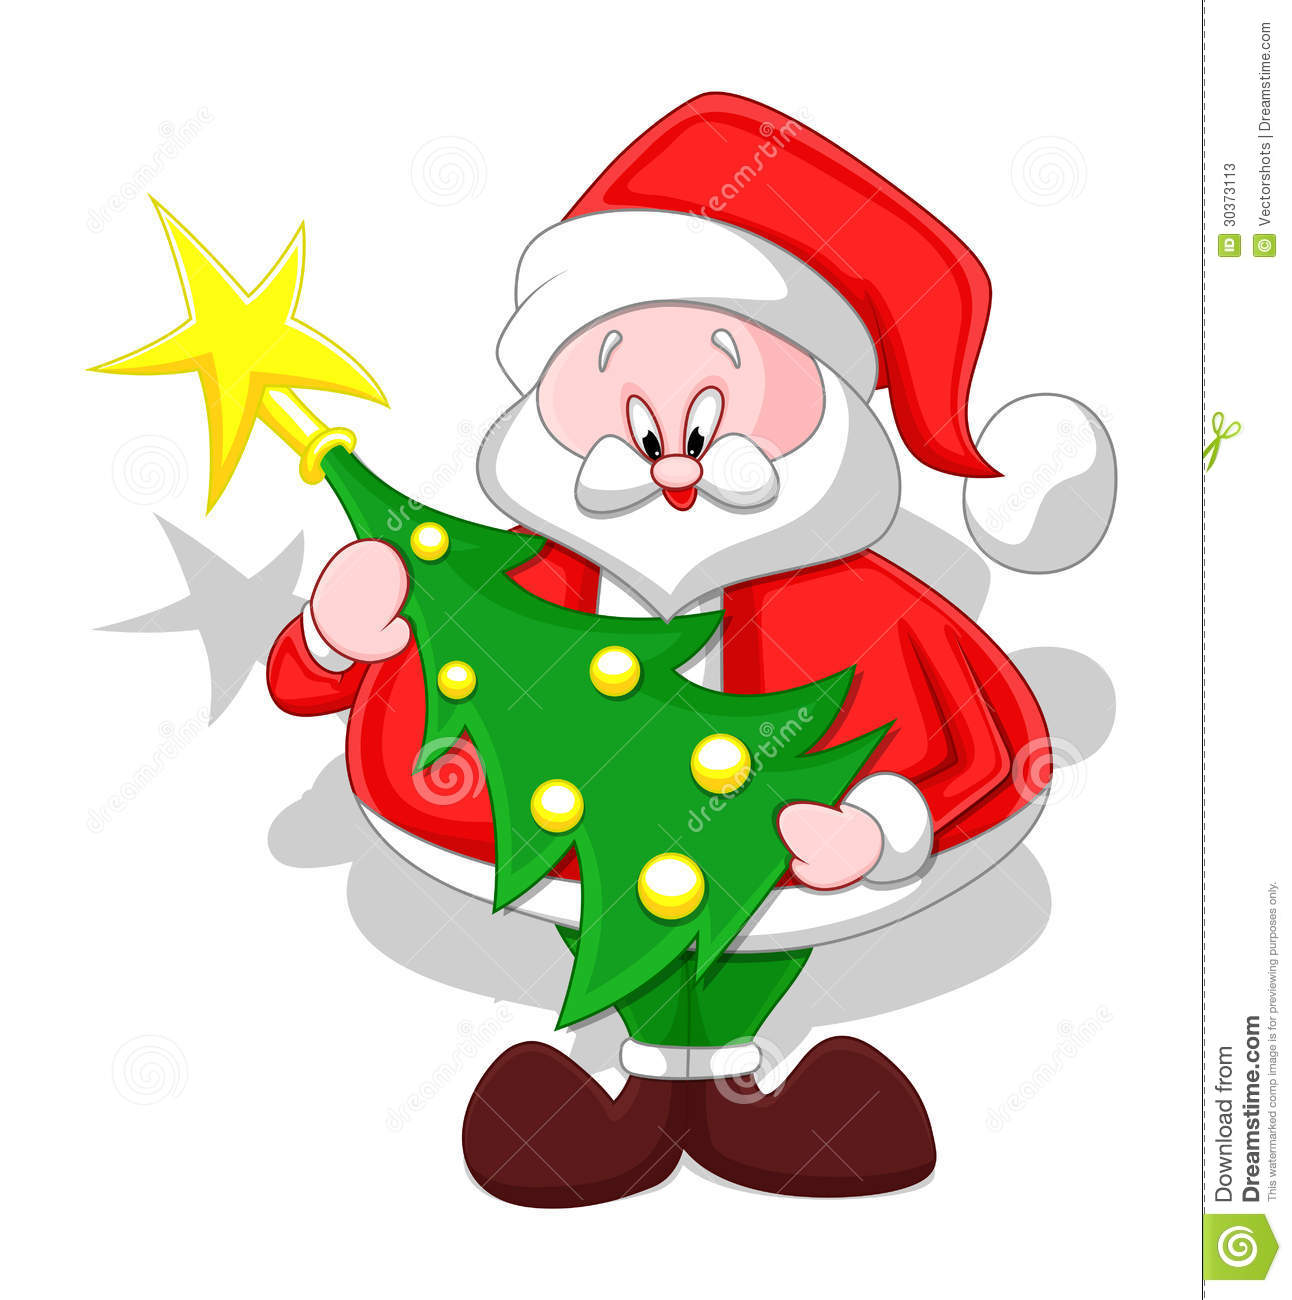 Conceptual Drawing Art Of Cute Cartoon Santa Claus Holding A Christmas Tree Vector Illustration